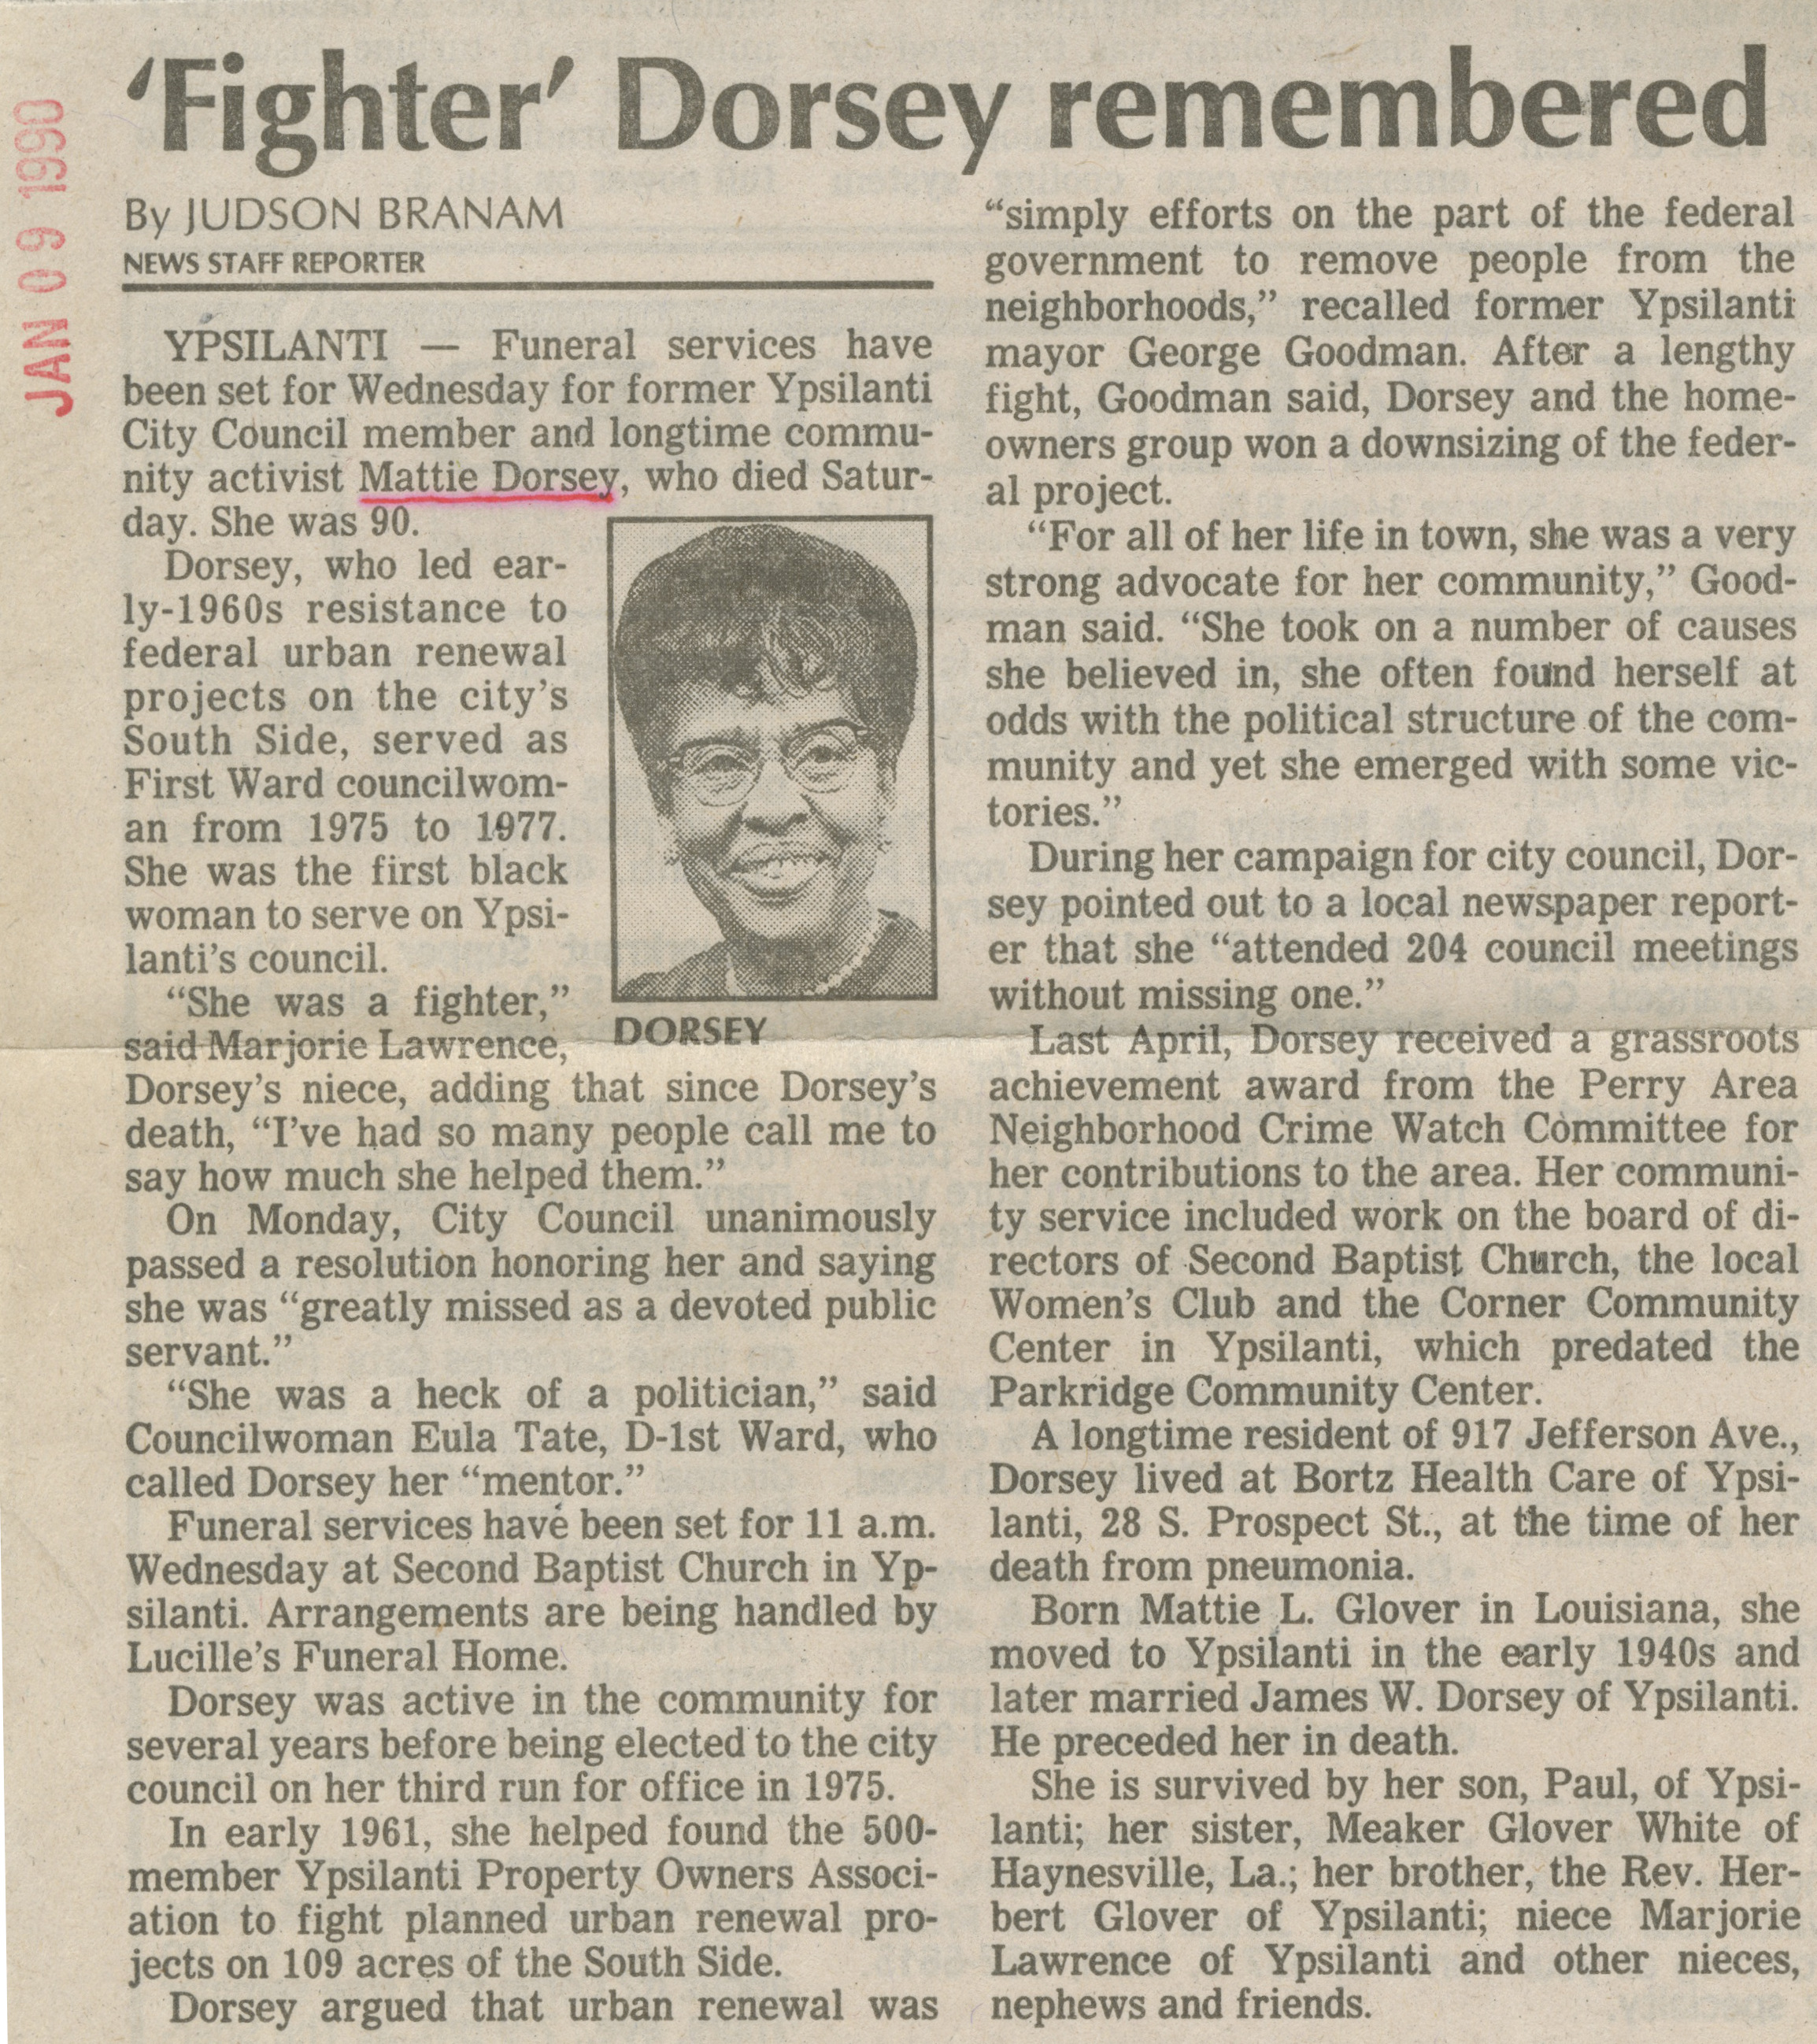 'Fighter' Dorsey Remembered image